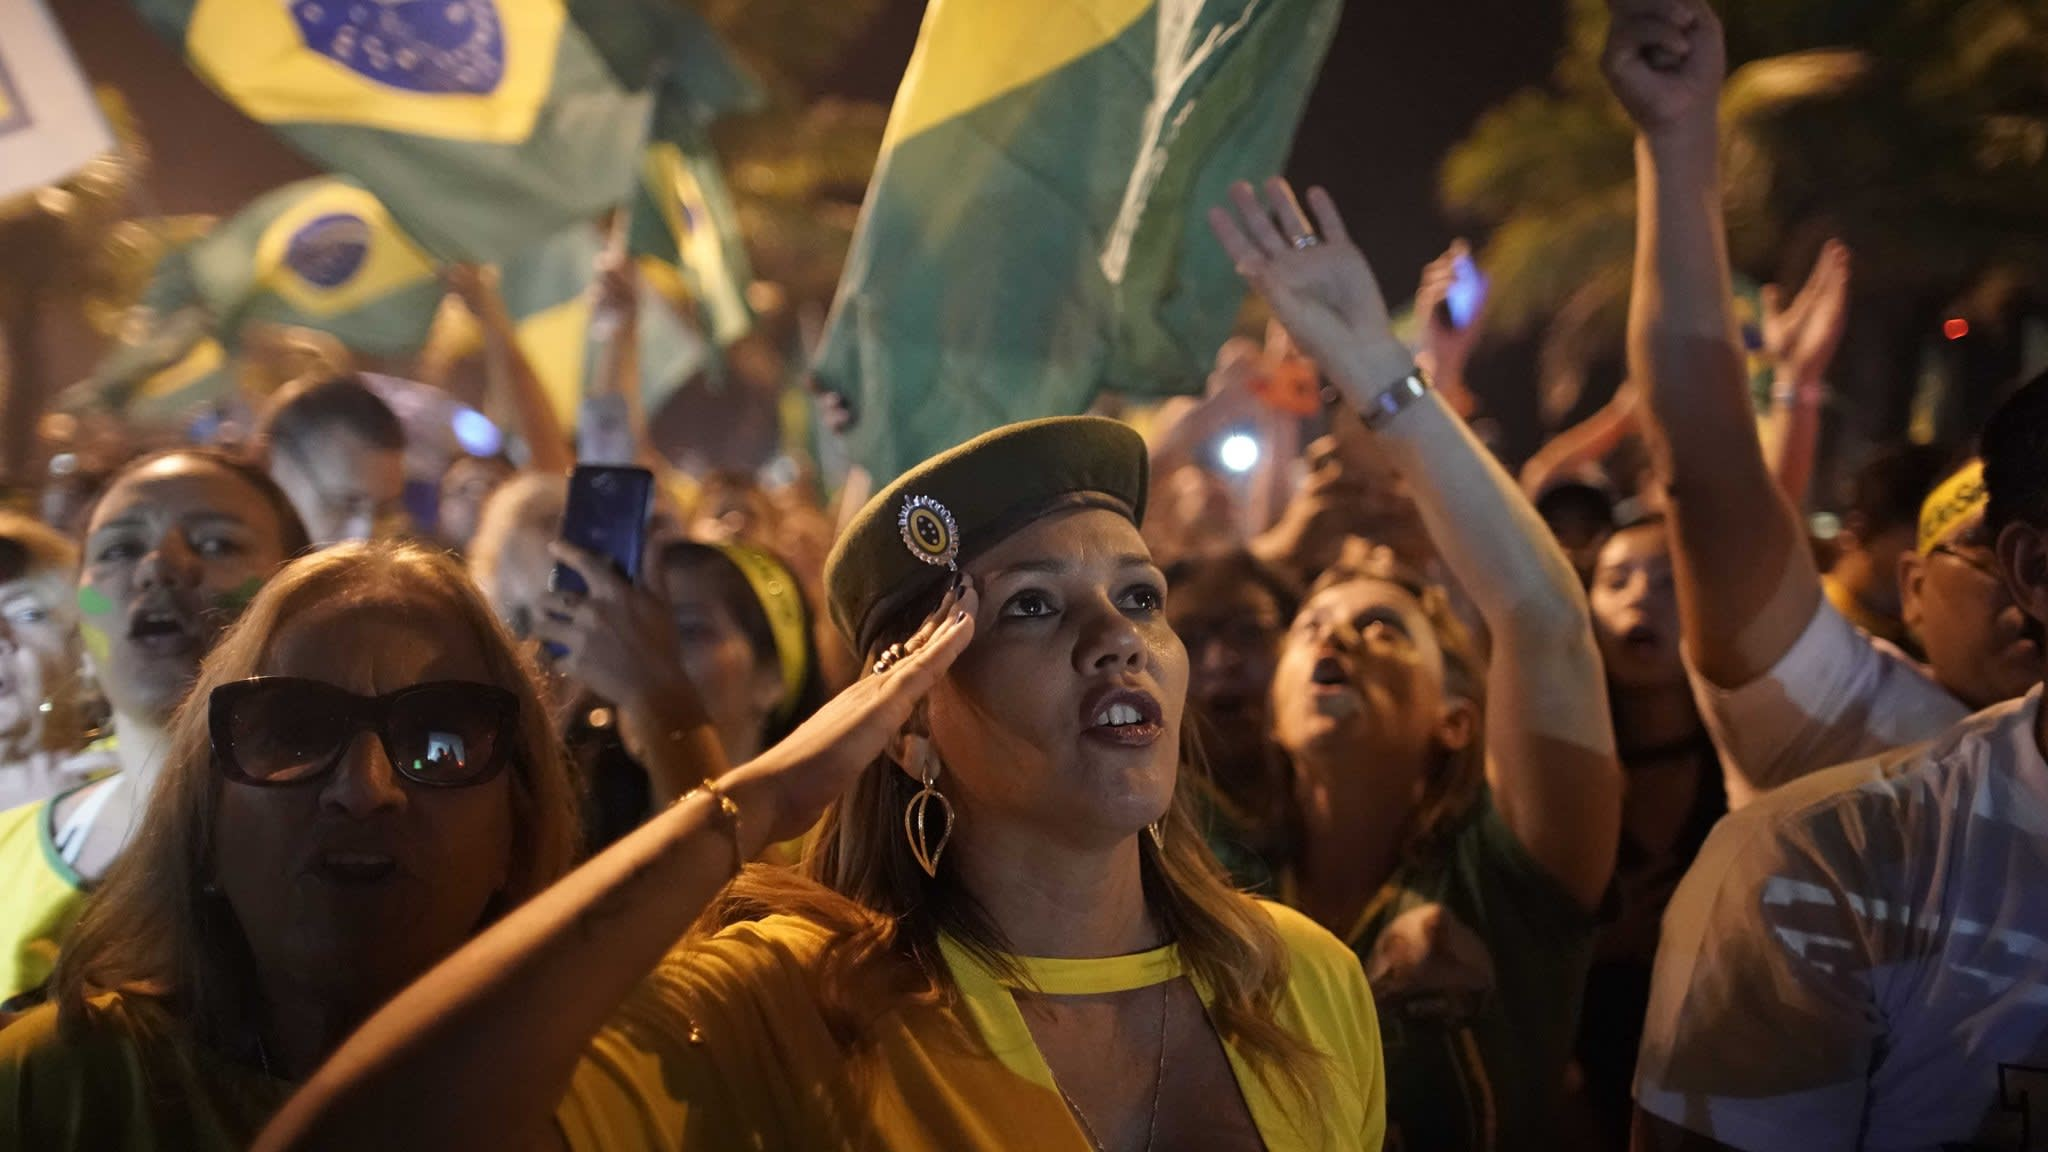 Brazil's generals vow to stay out of politics